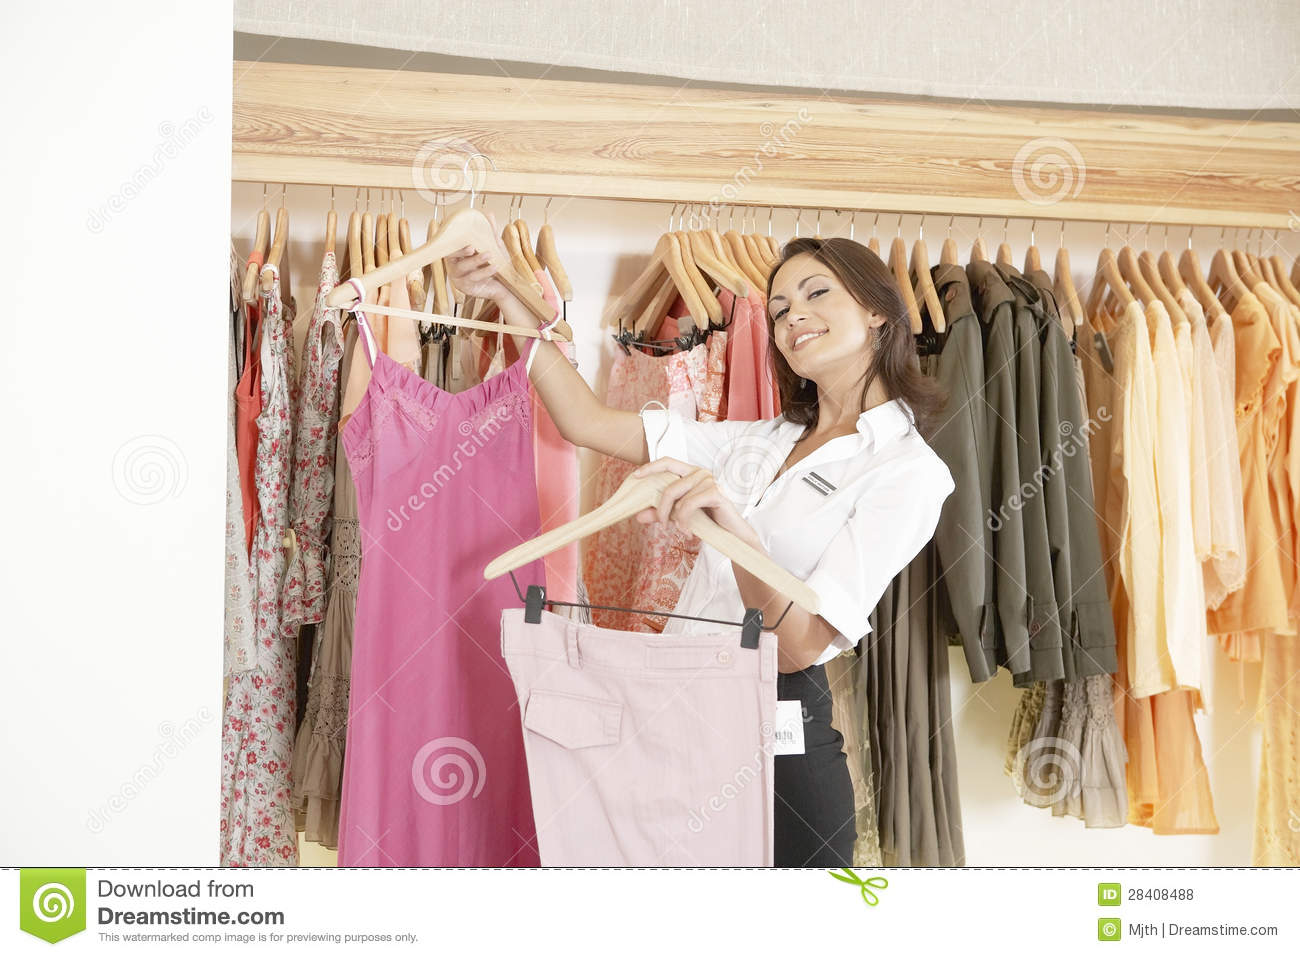 Work world clothing store Clothing stores online